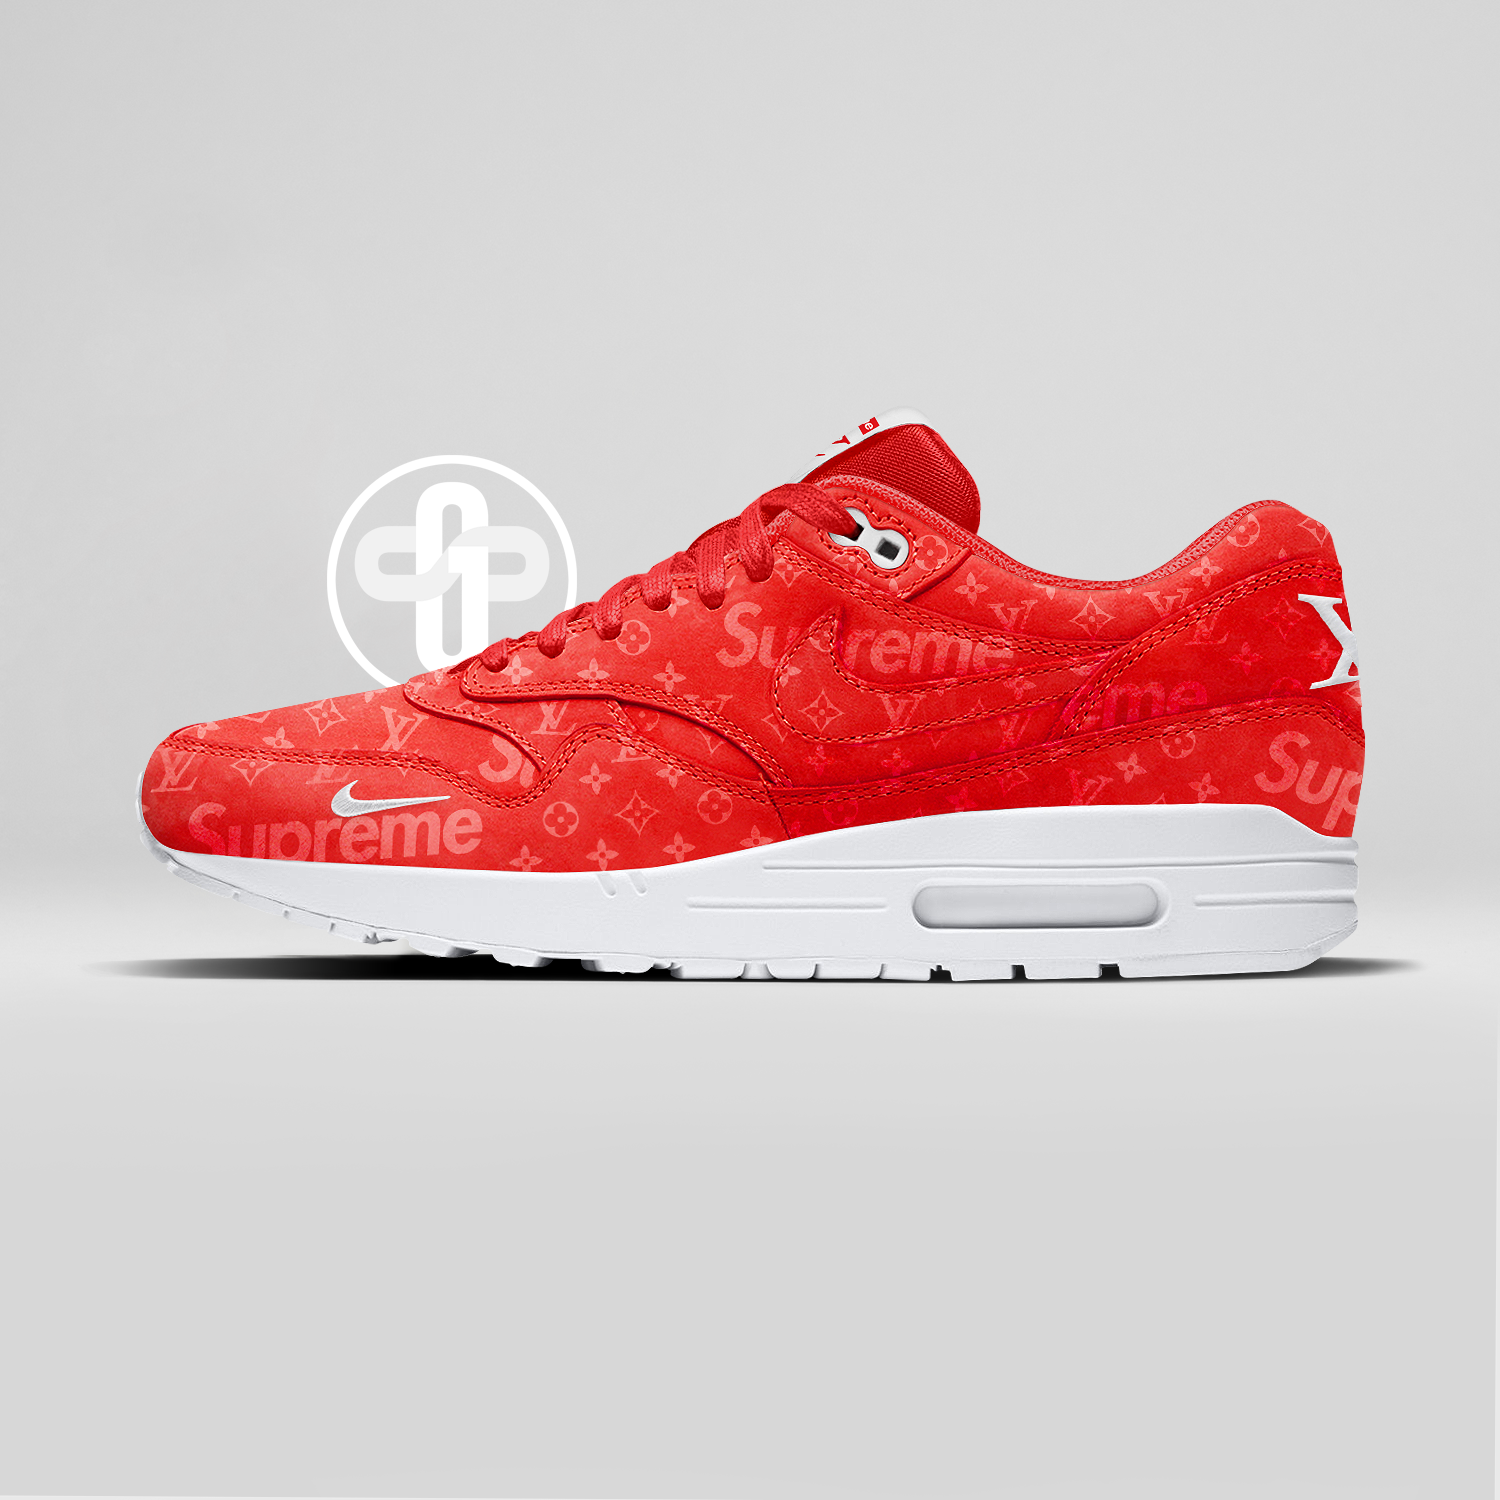 793a53a4b6273 Louis Vuitton x Supreme x Nike Air Max 1 Pure Red